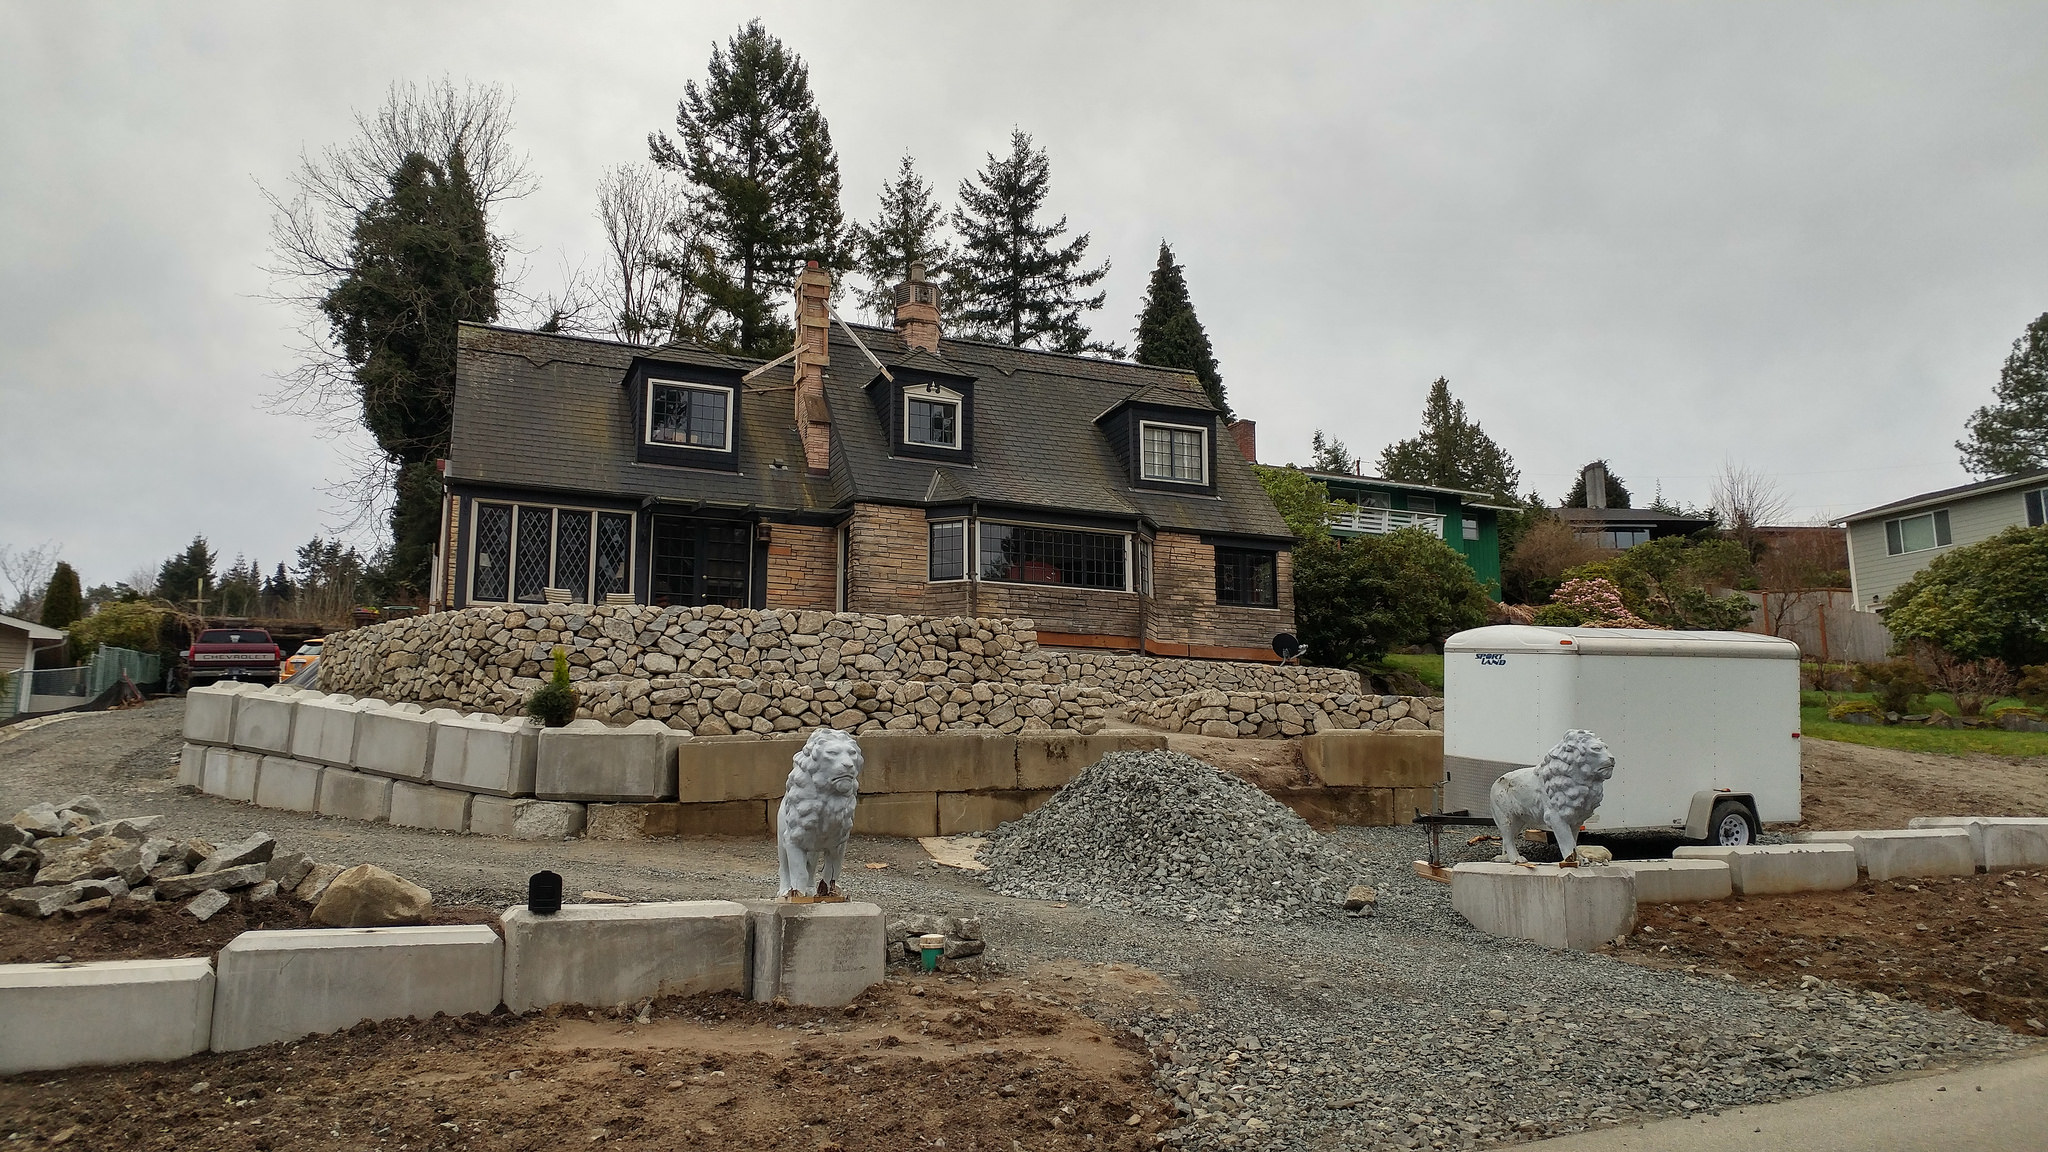 Landscaping begins at the Lion House's new location // Christopher Bragg